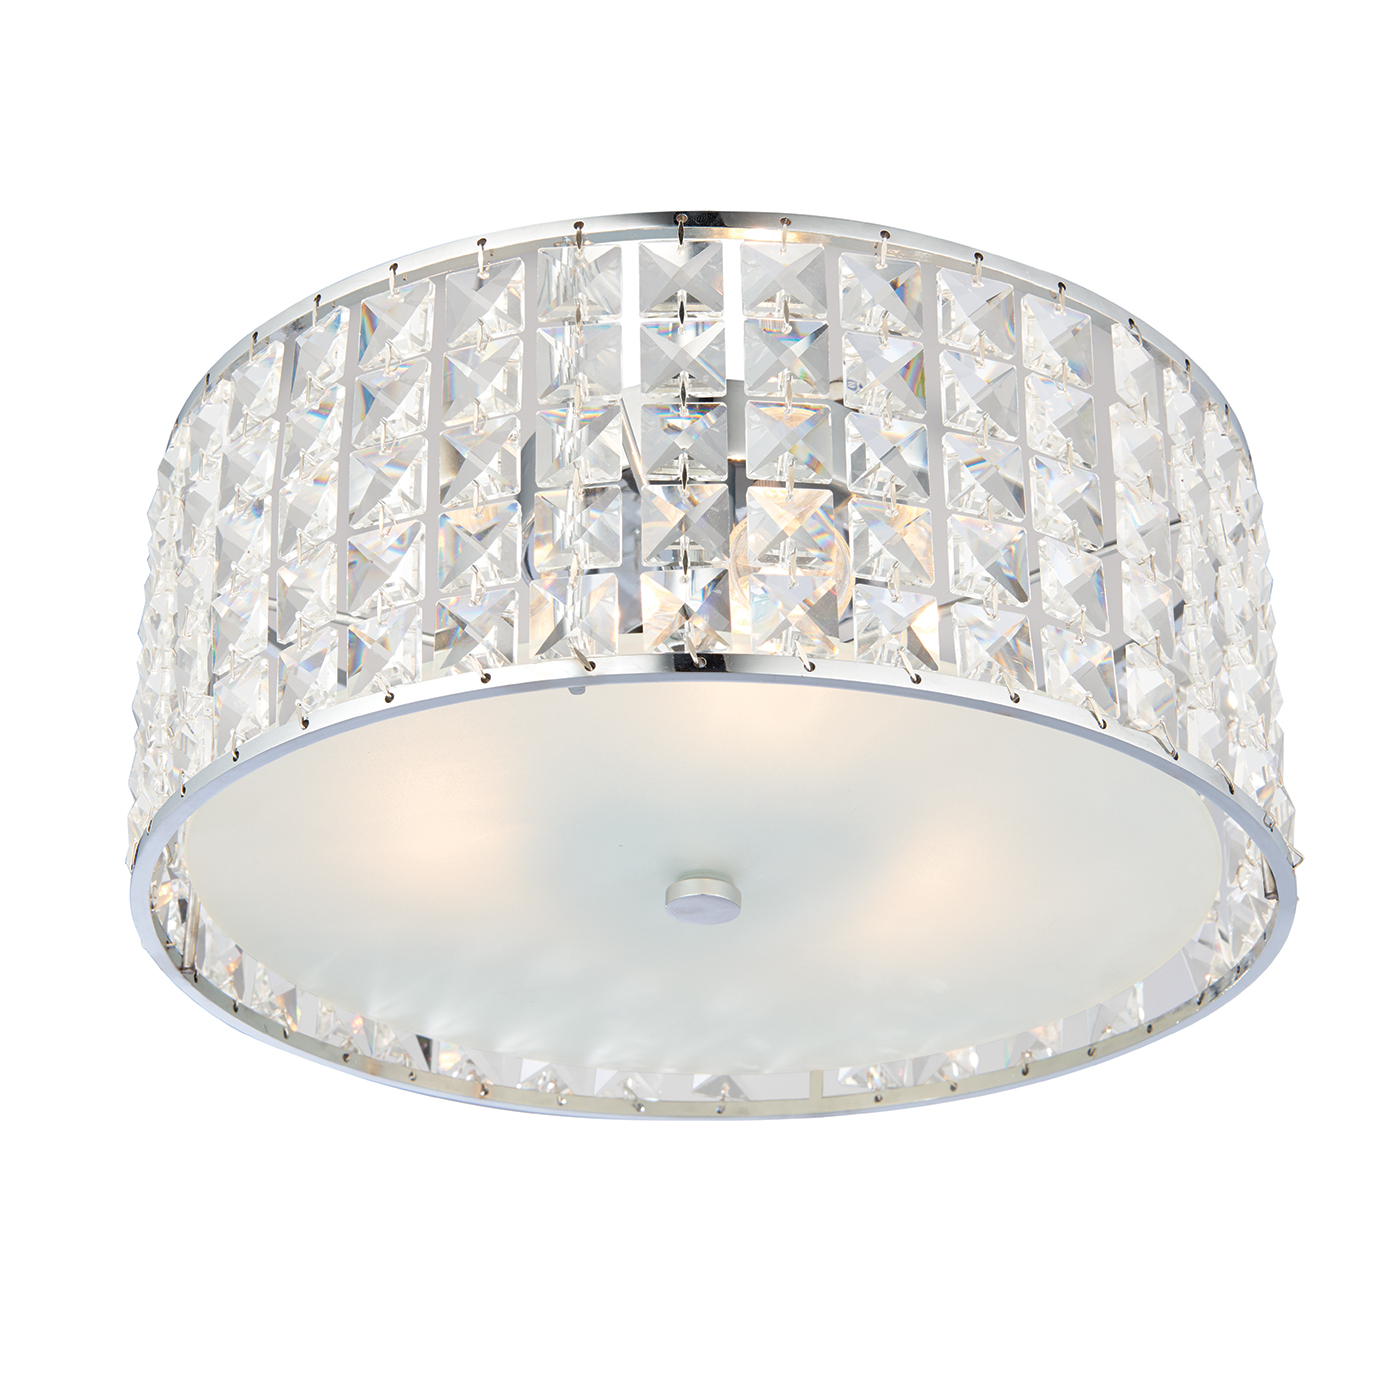 Endon Belfont 3lt flush bathroom ceiling light IP44 18W crystal detail & chrome Thumbnail 1